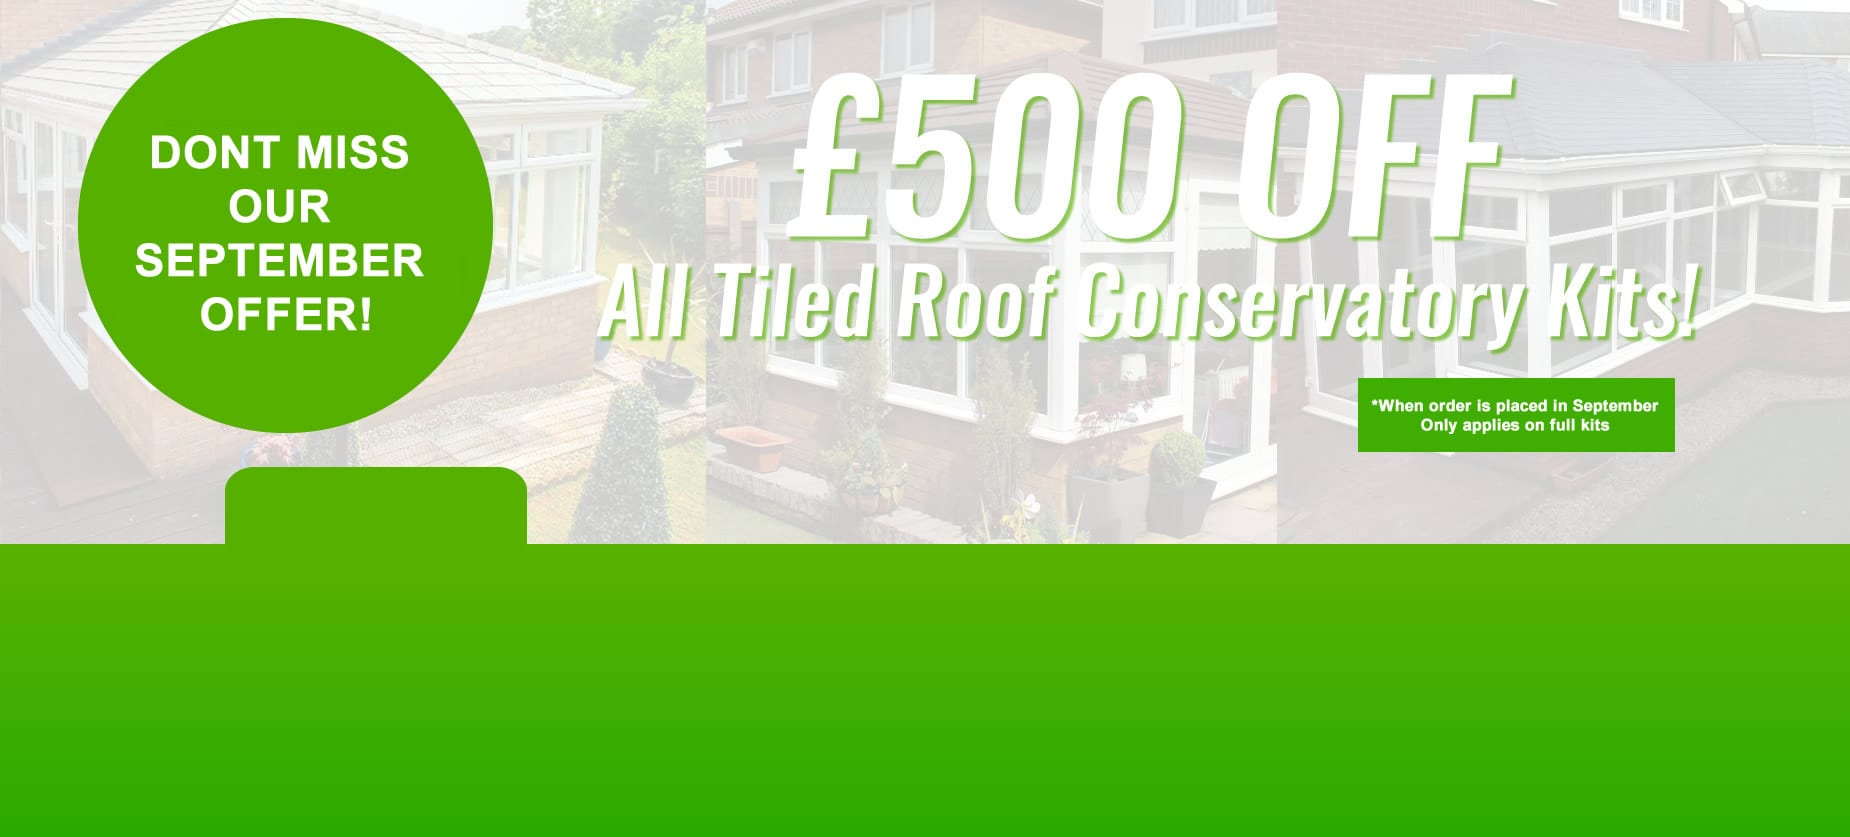 tiled roof conservatories home banner